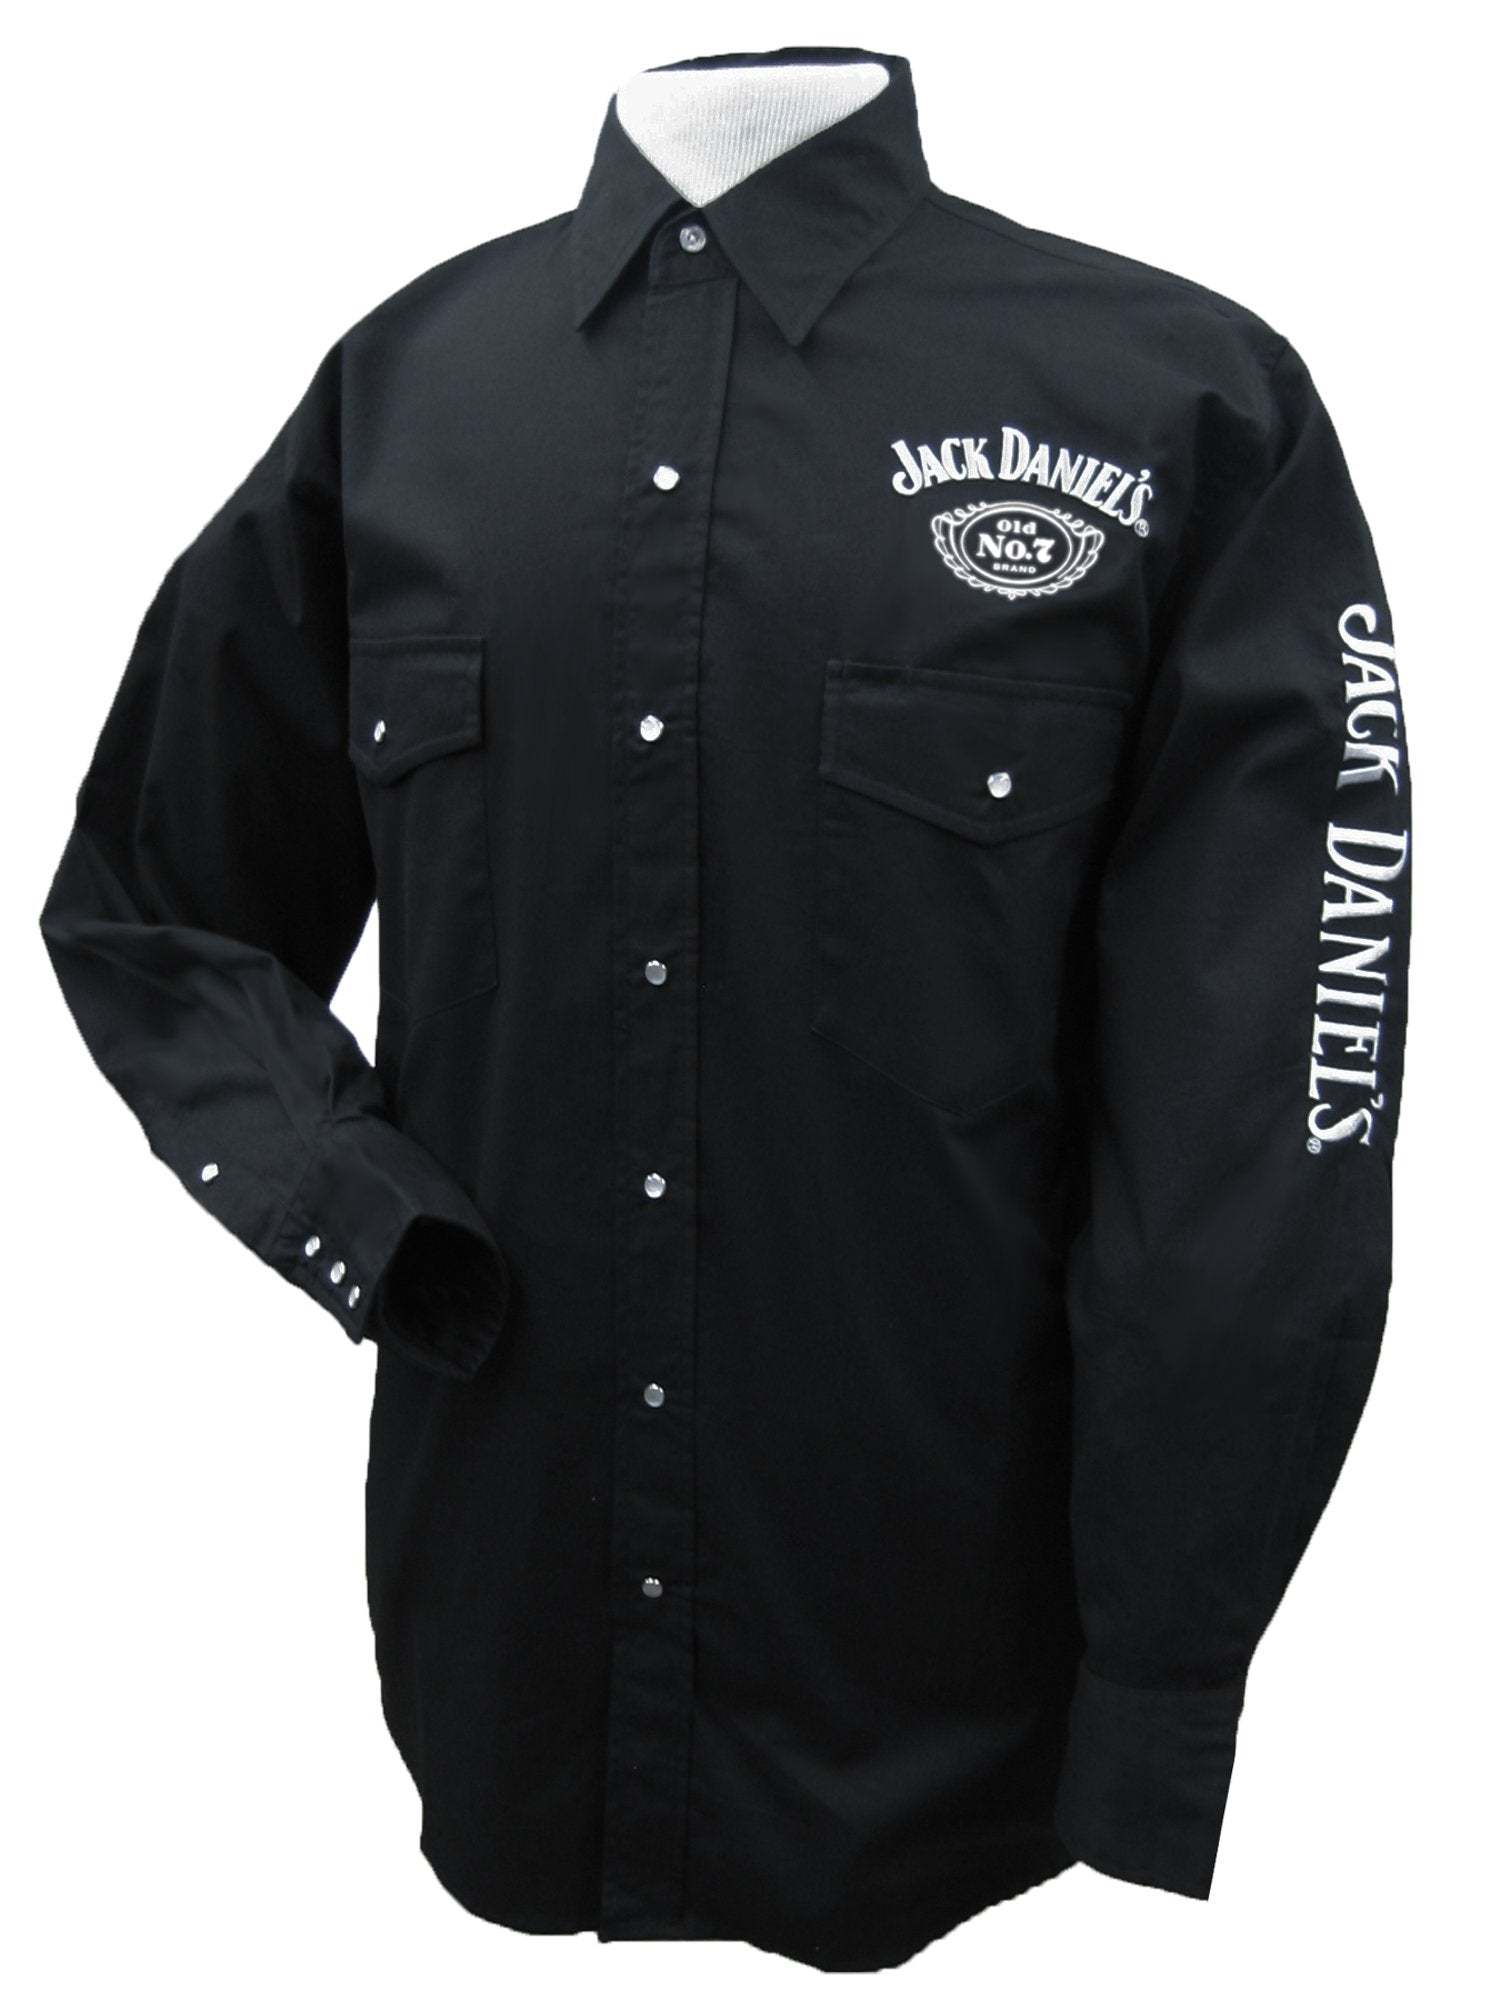 Ely & Walker Men's Jack Daniels Long Sleeve Western Shirt - Black